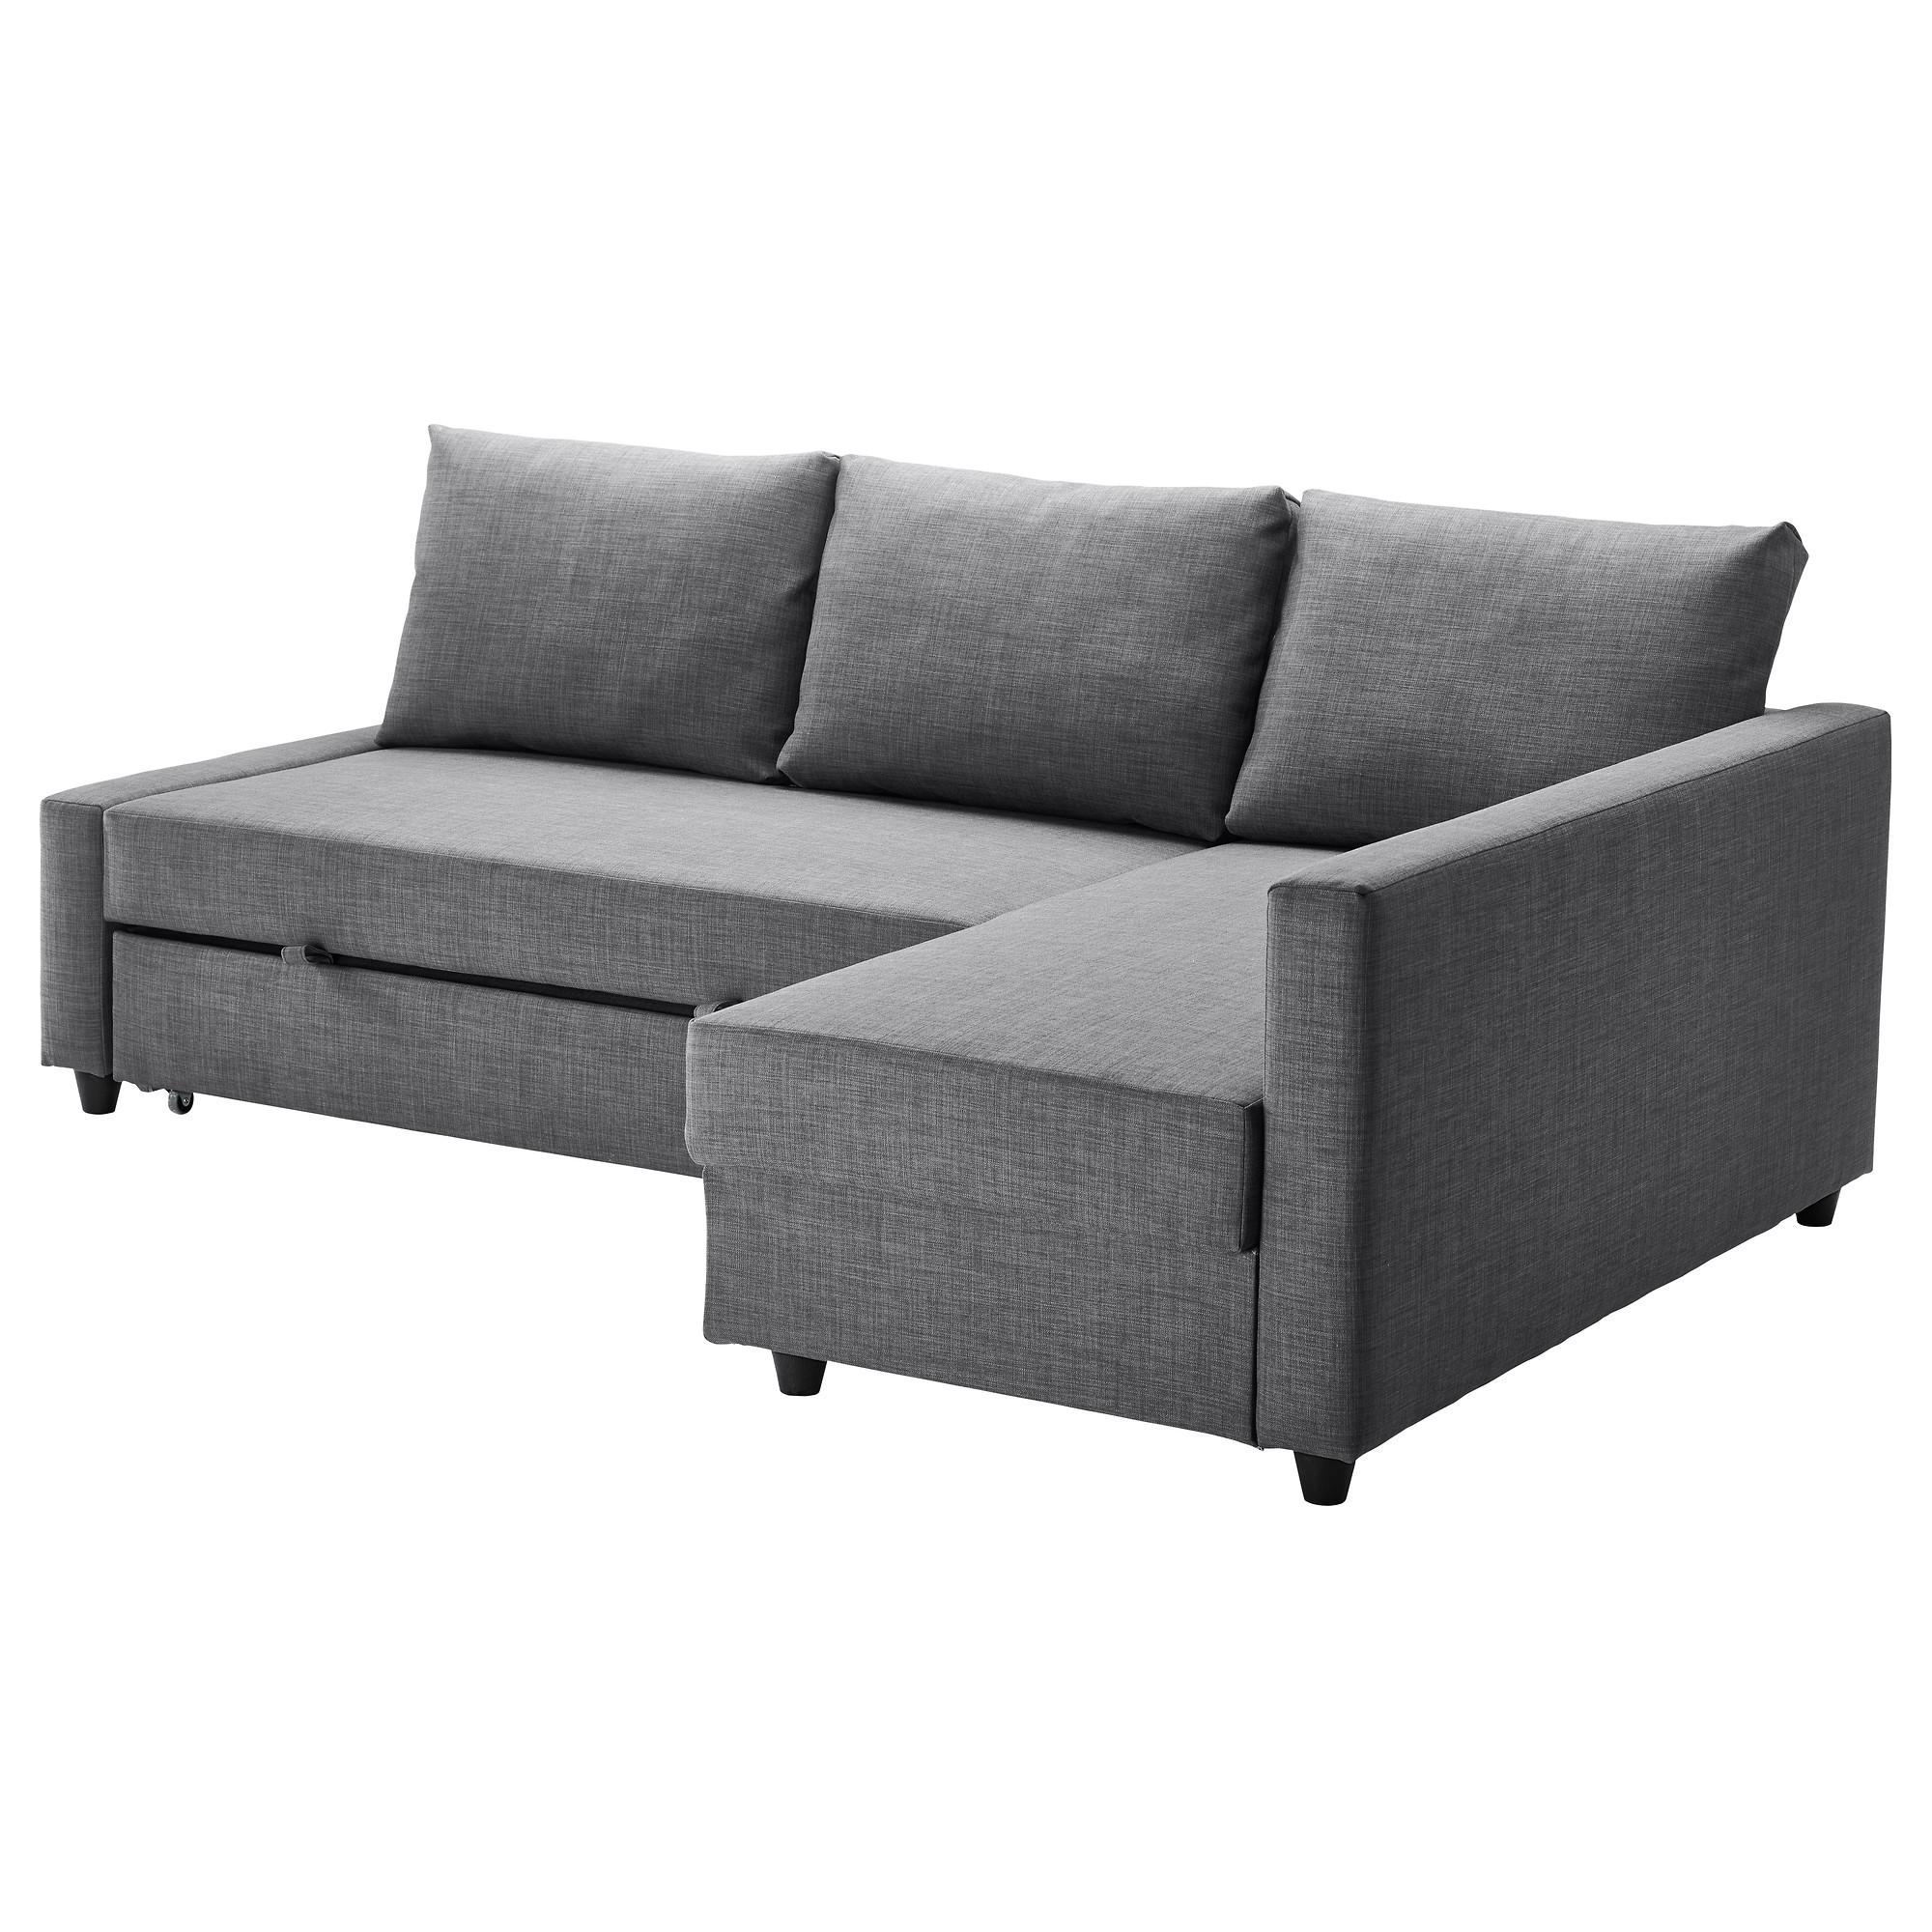 Friheten Sleeper Sectional 3 Seat W Storage Skiftebo Dark Gray Ikea